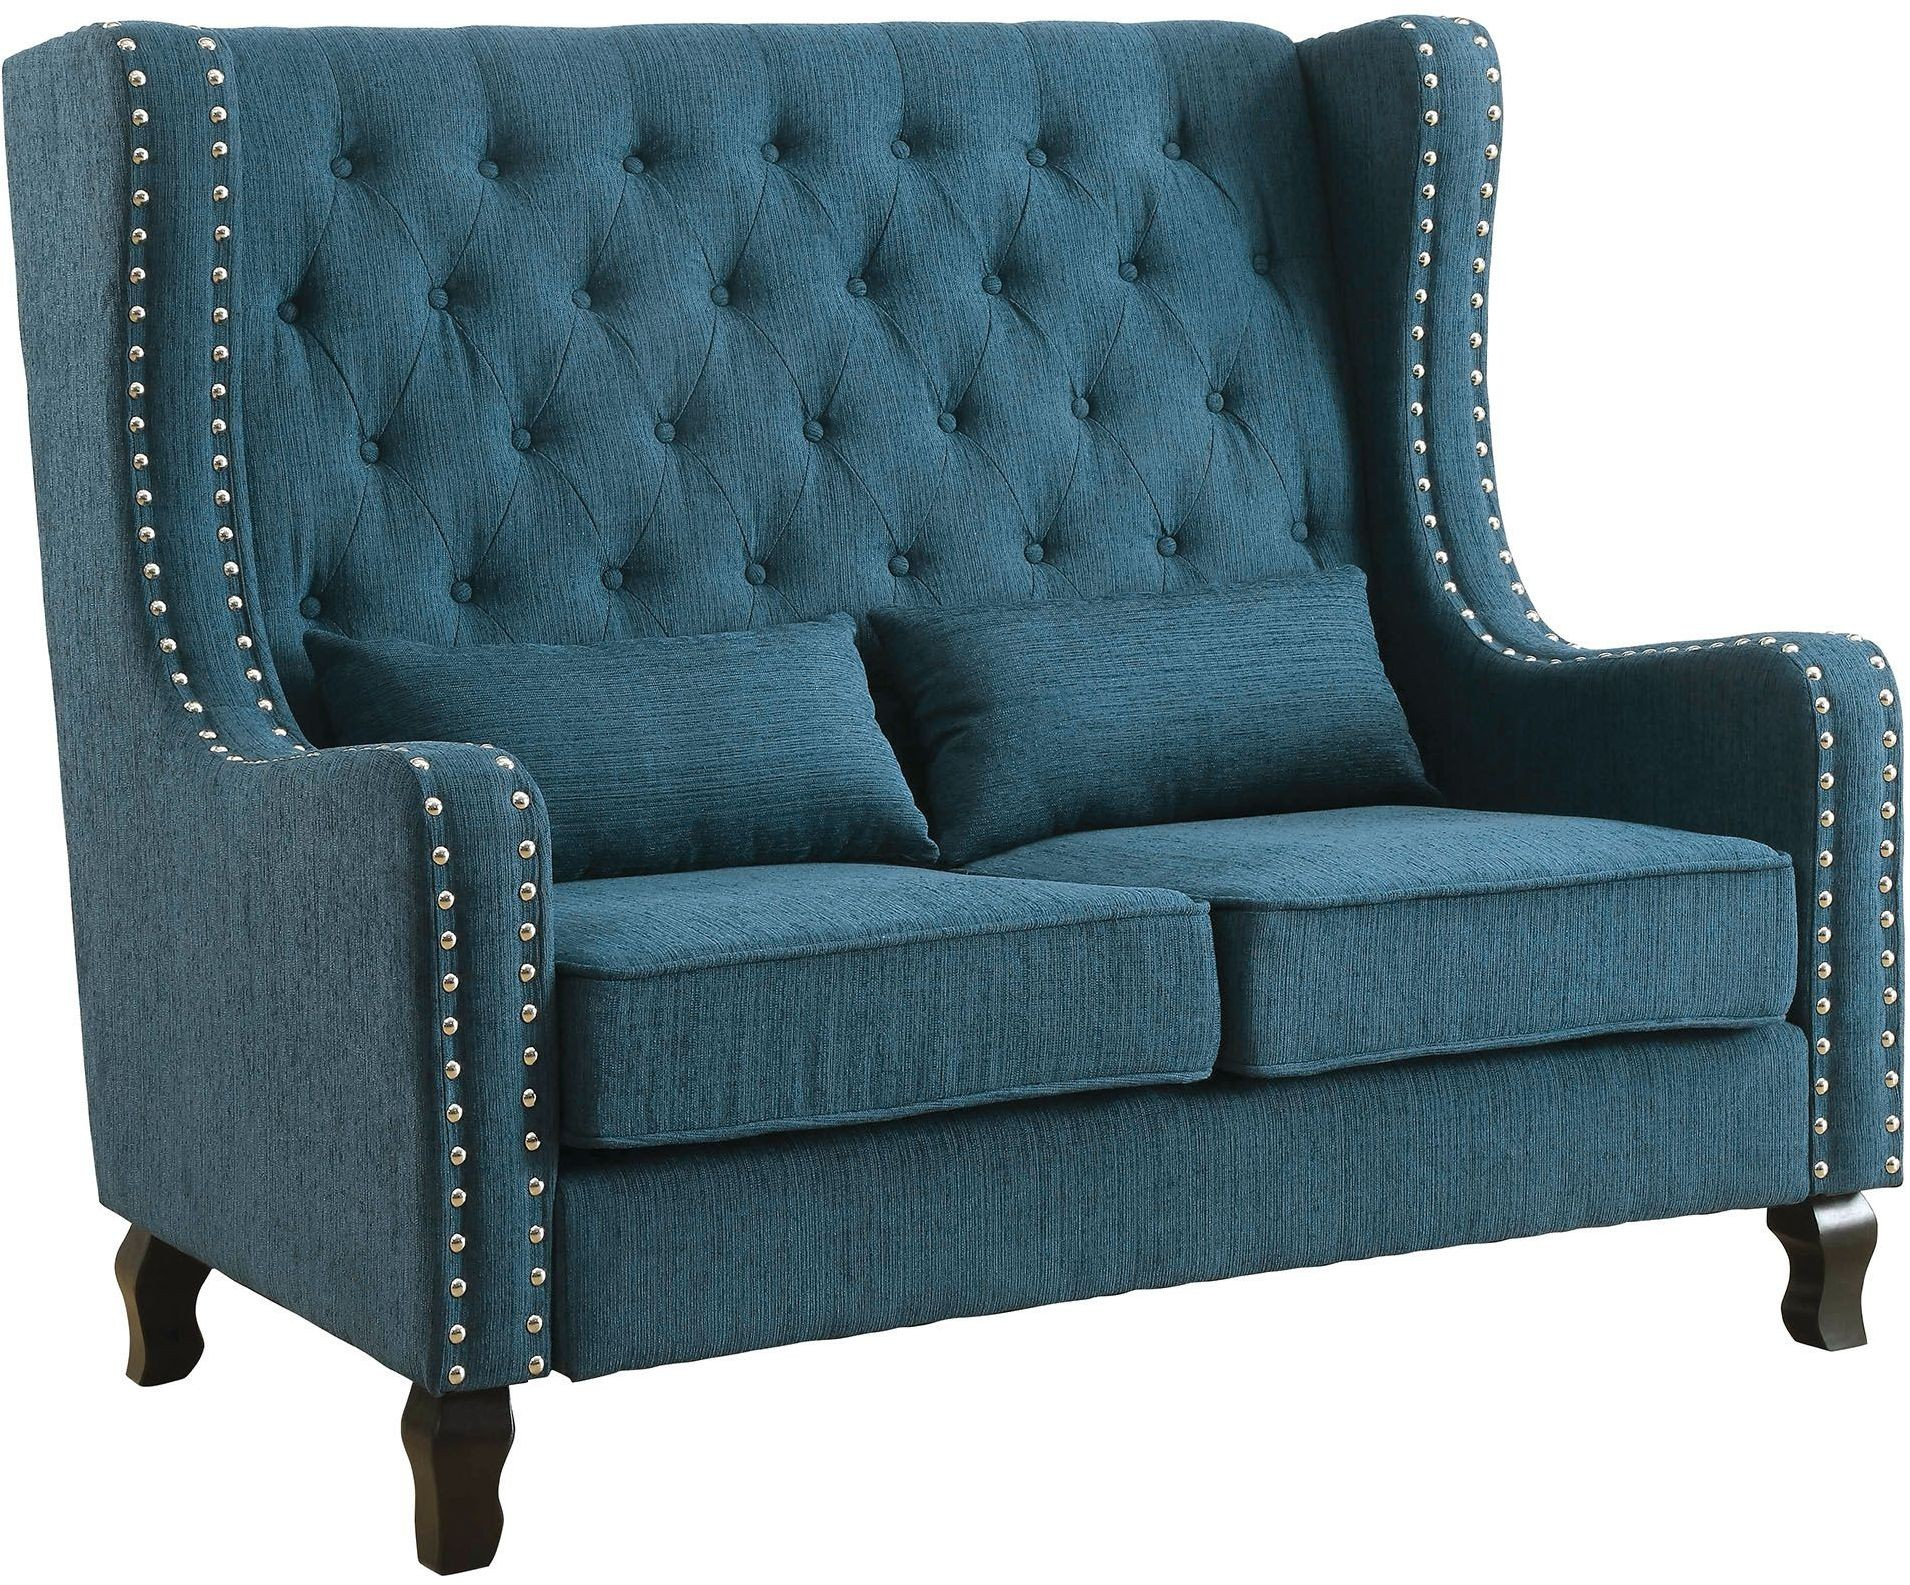 Alicante Dark Teal Loveseat Bench From Furniture Of